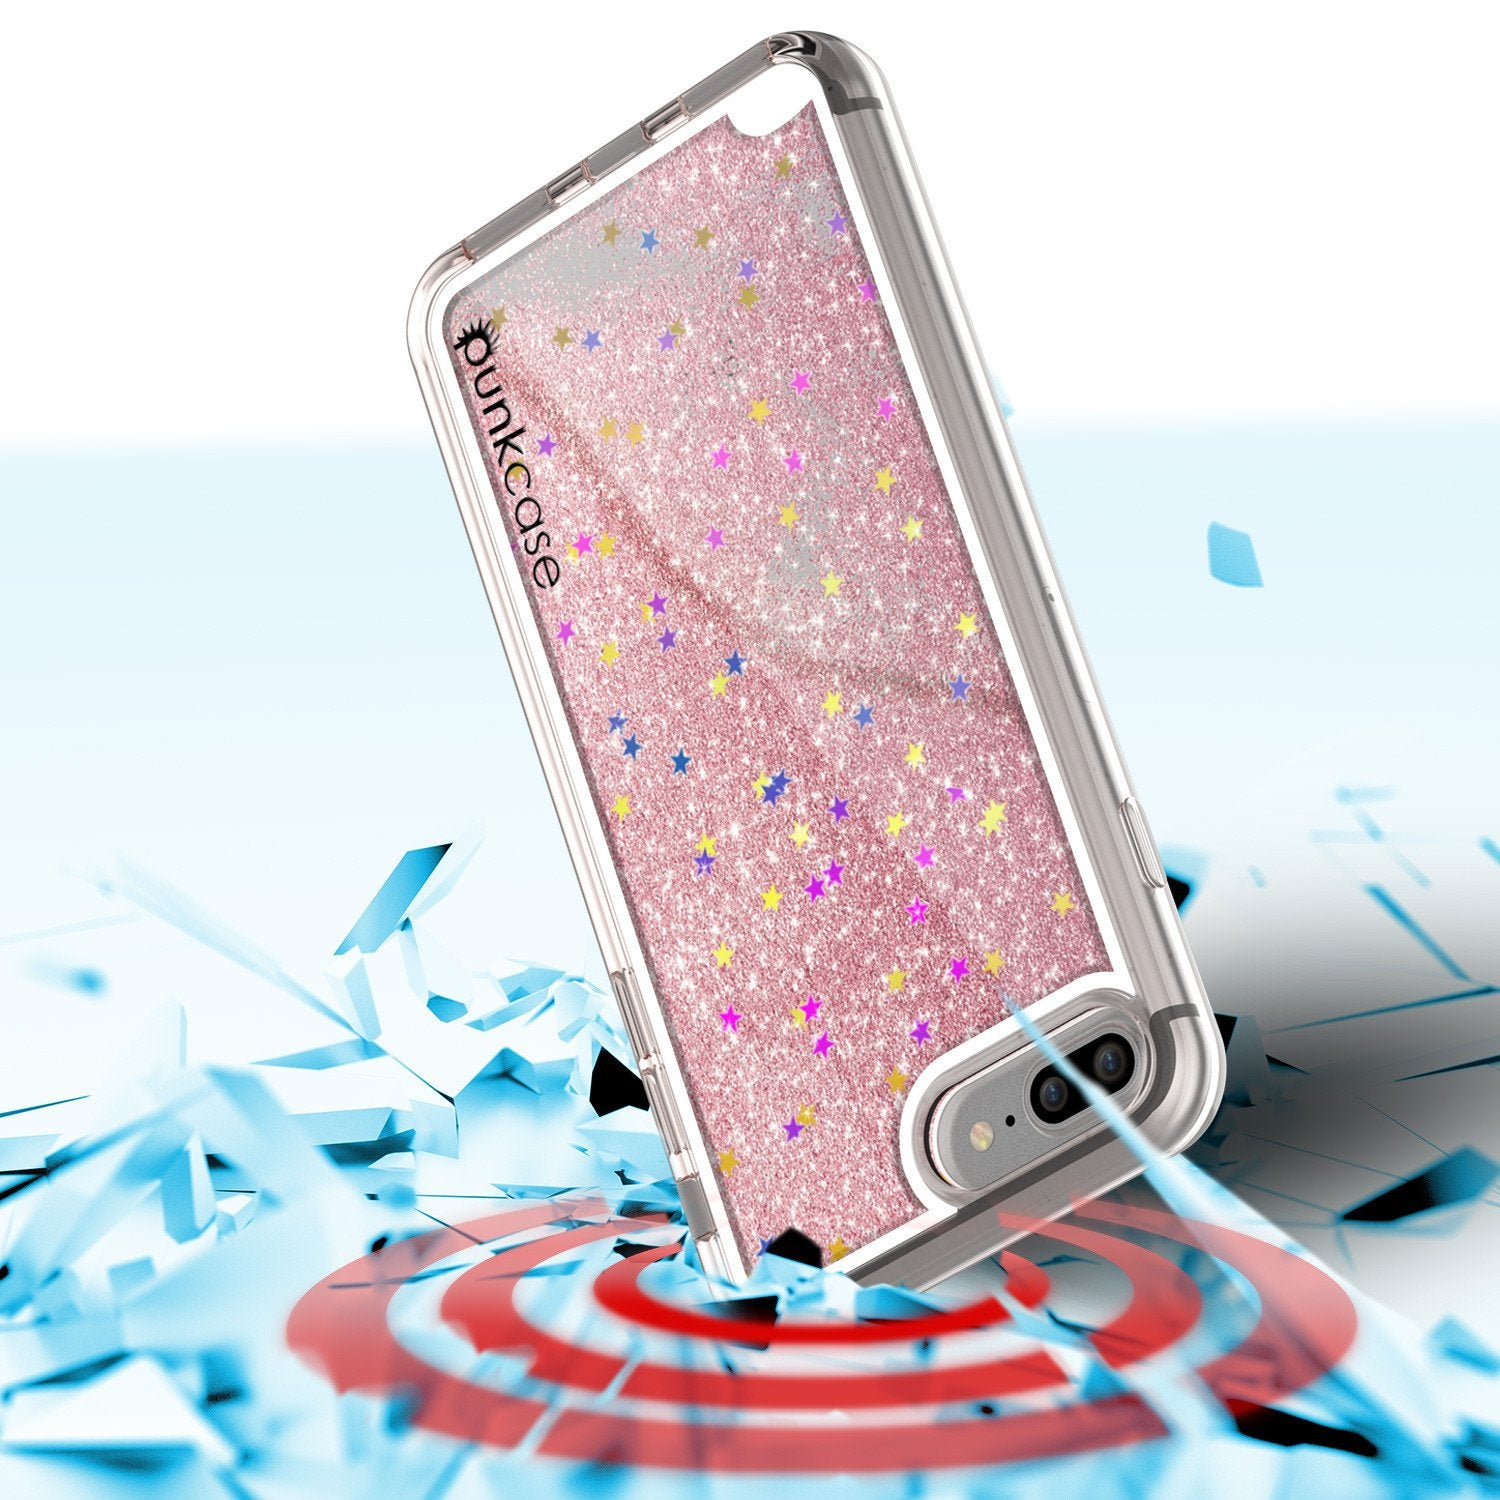 iPhone 7 Plus Case, PunkCase LIQUID Rose Series, Protective Dual Layer Floating Glitter Cover